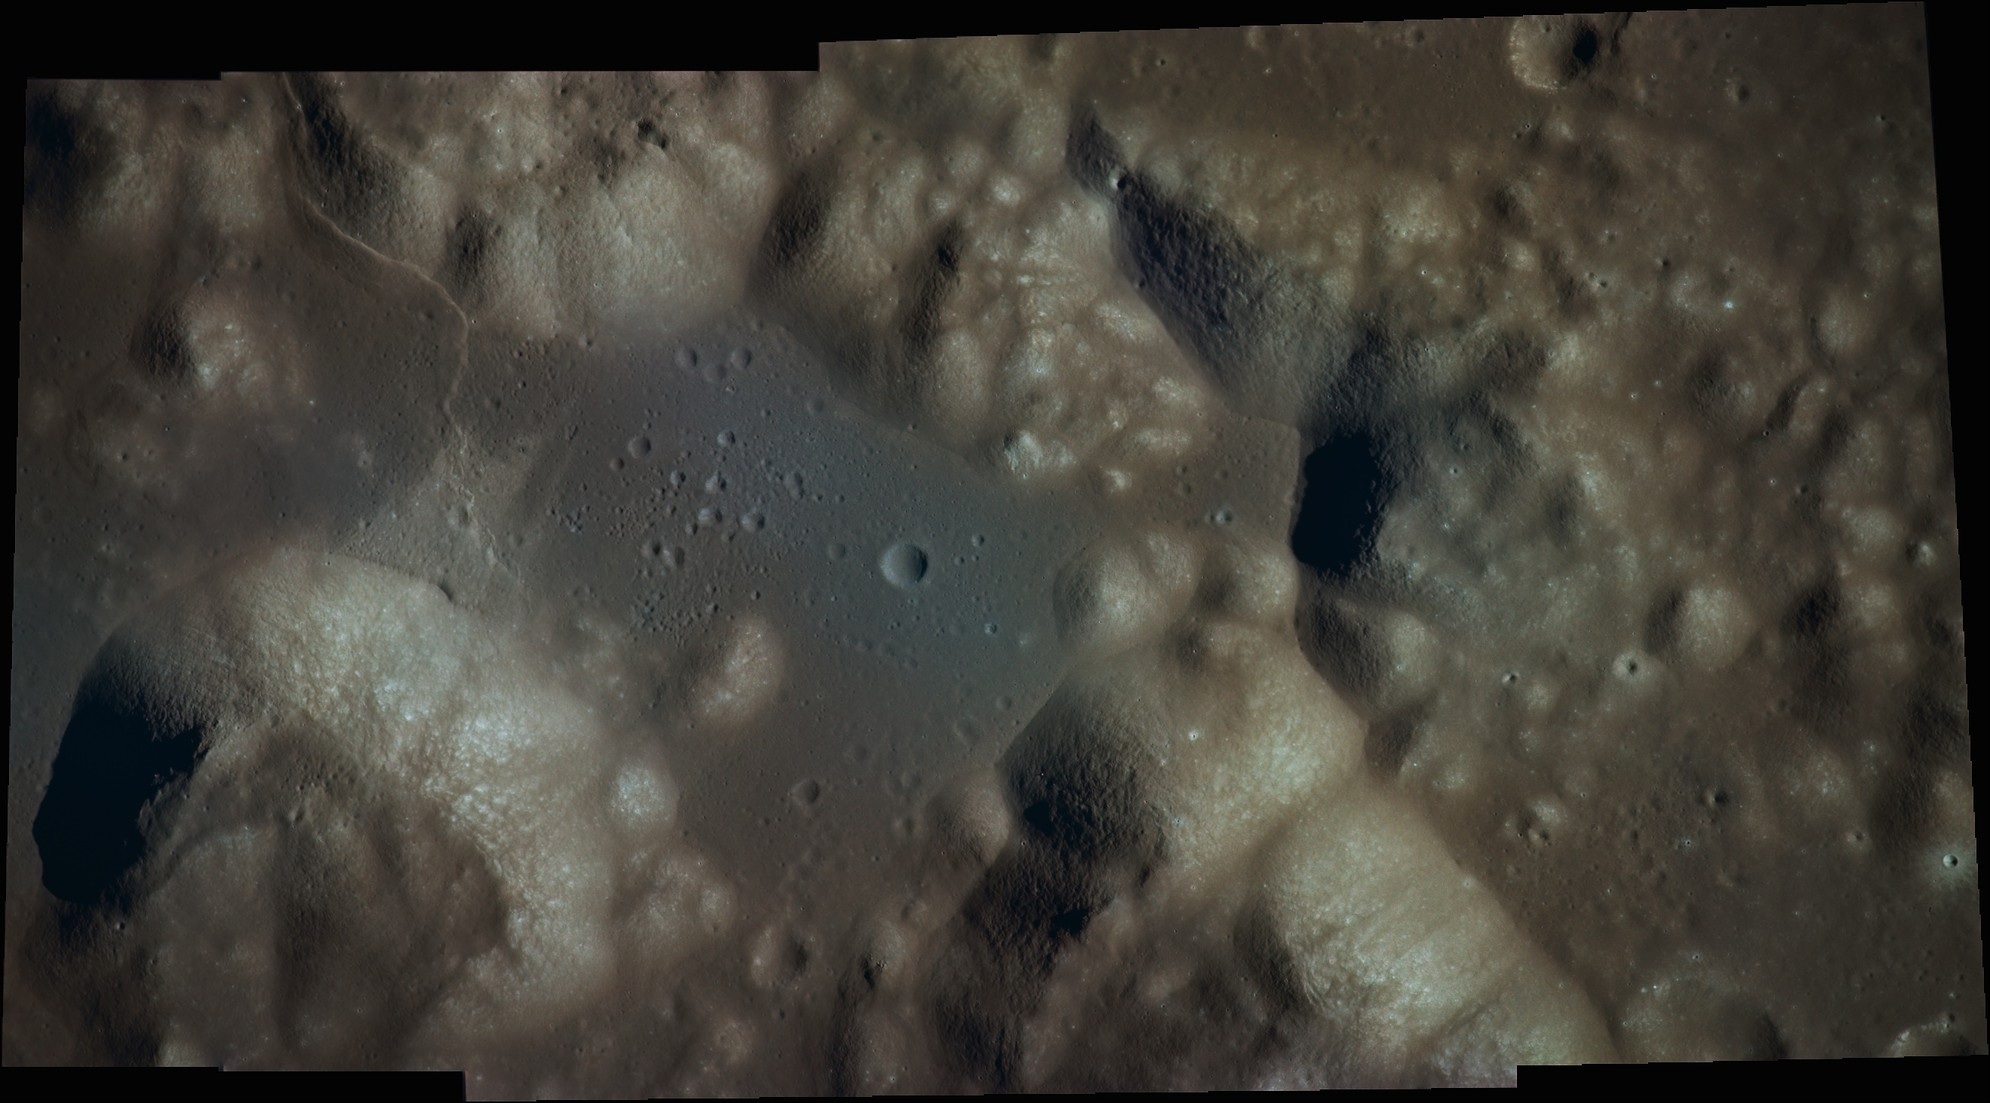 Apollo 17 Composite: Taurus-Littrow Valley